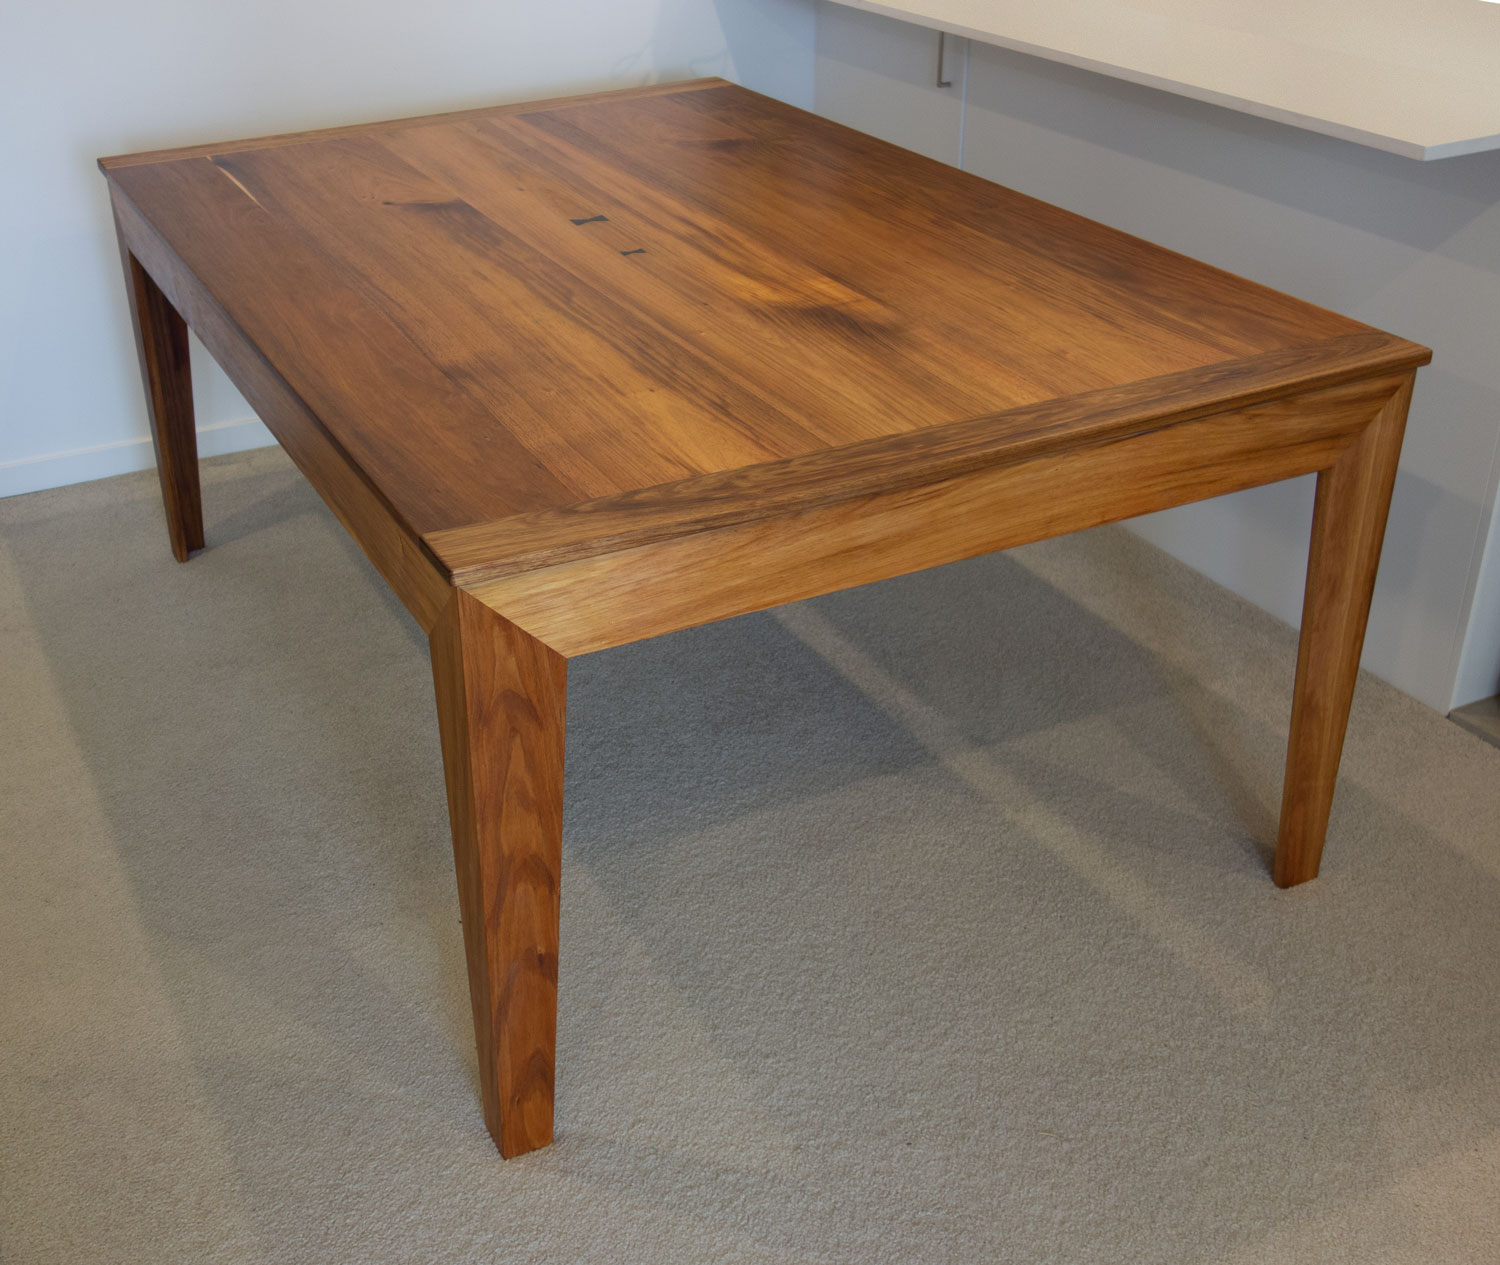 Tasmanian blackwood table with lift off top becomes a games table